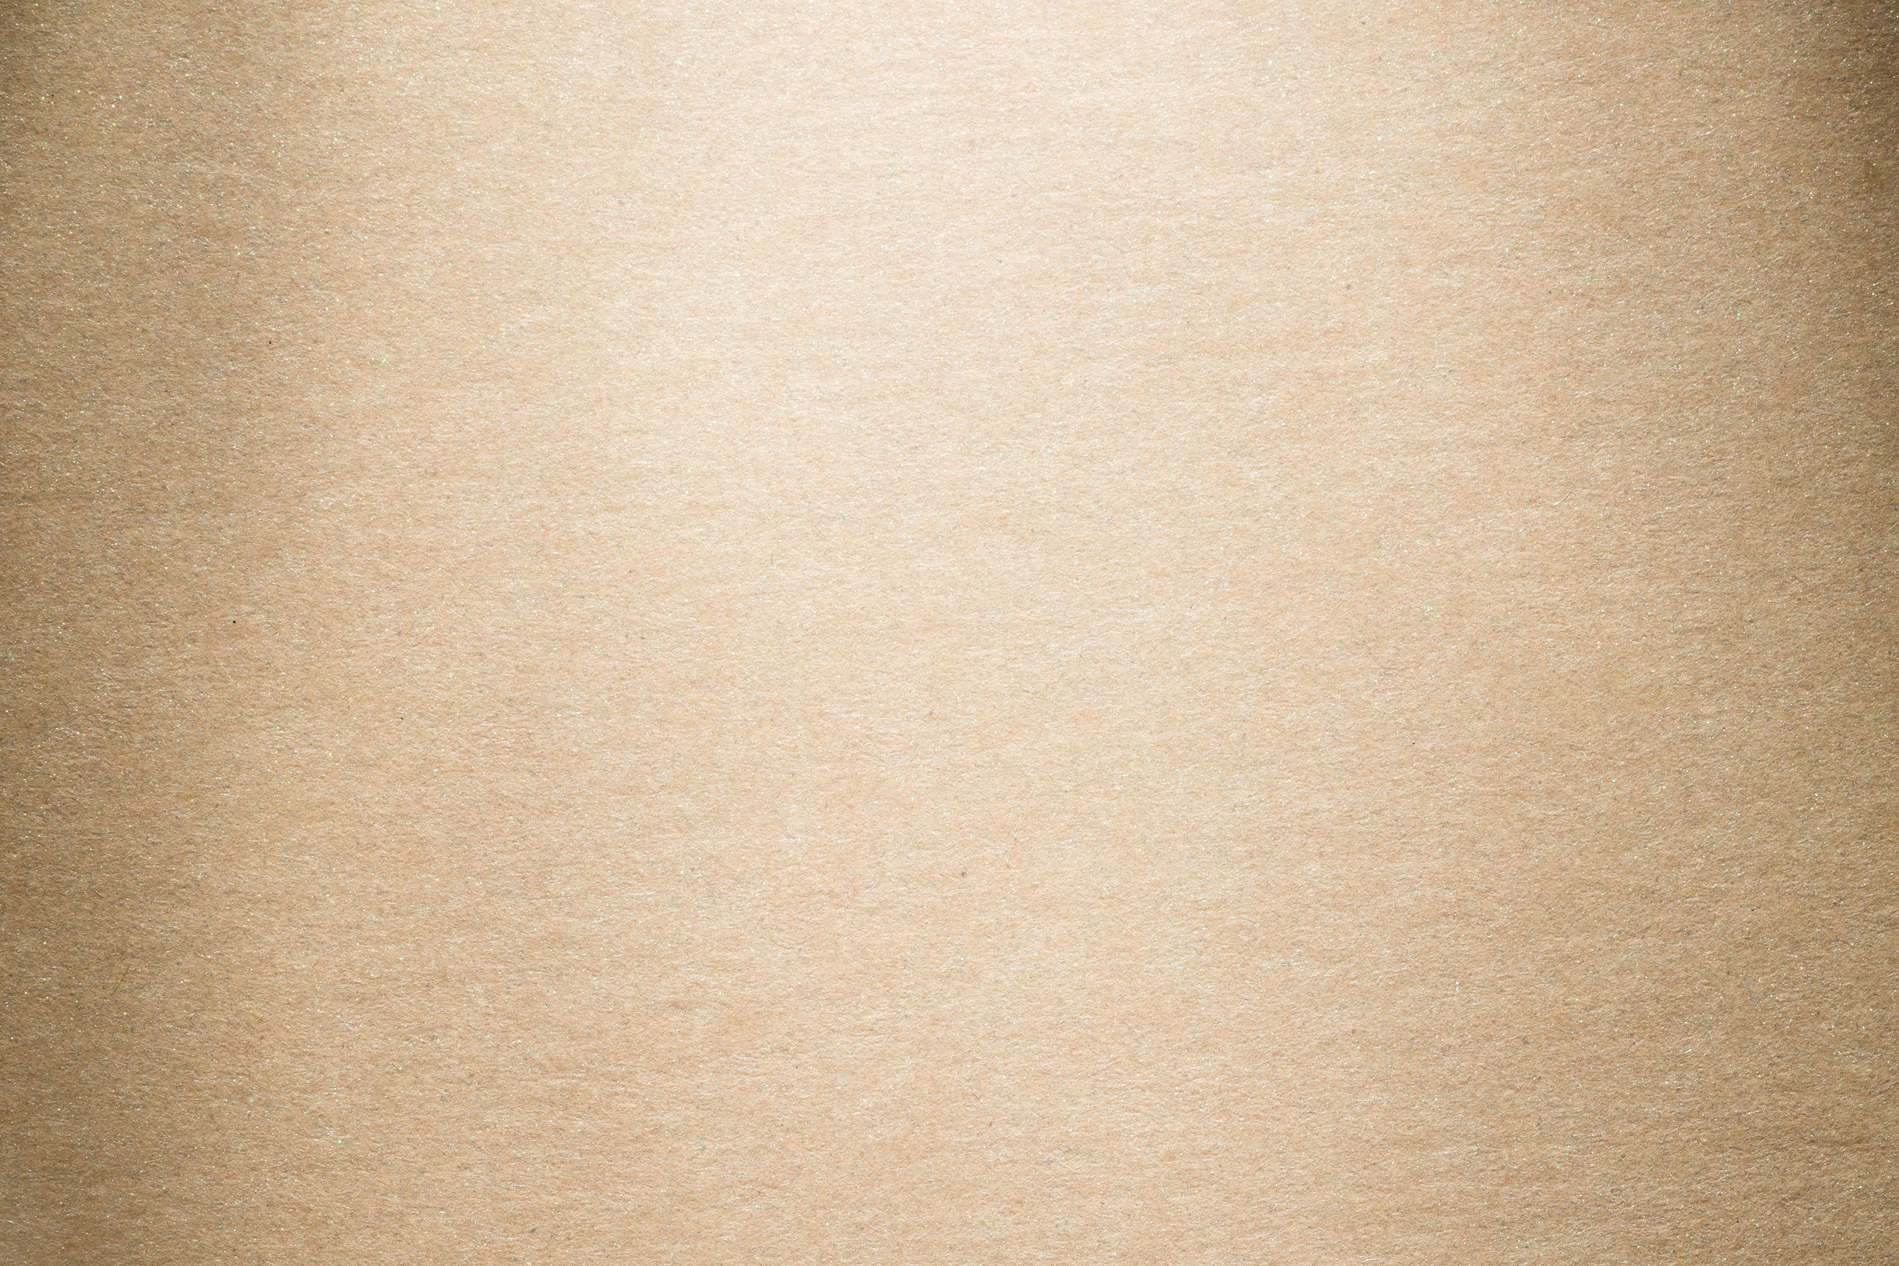 Clean Vintage Yellow Brown Paper Texture Background